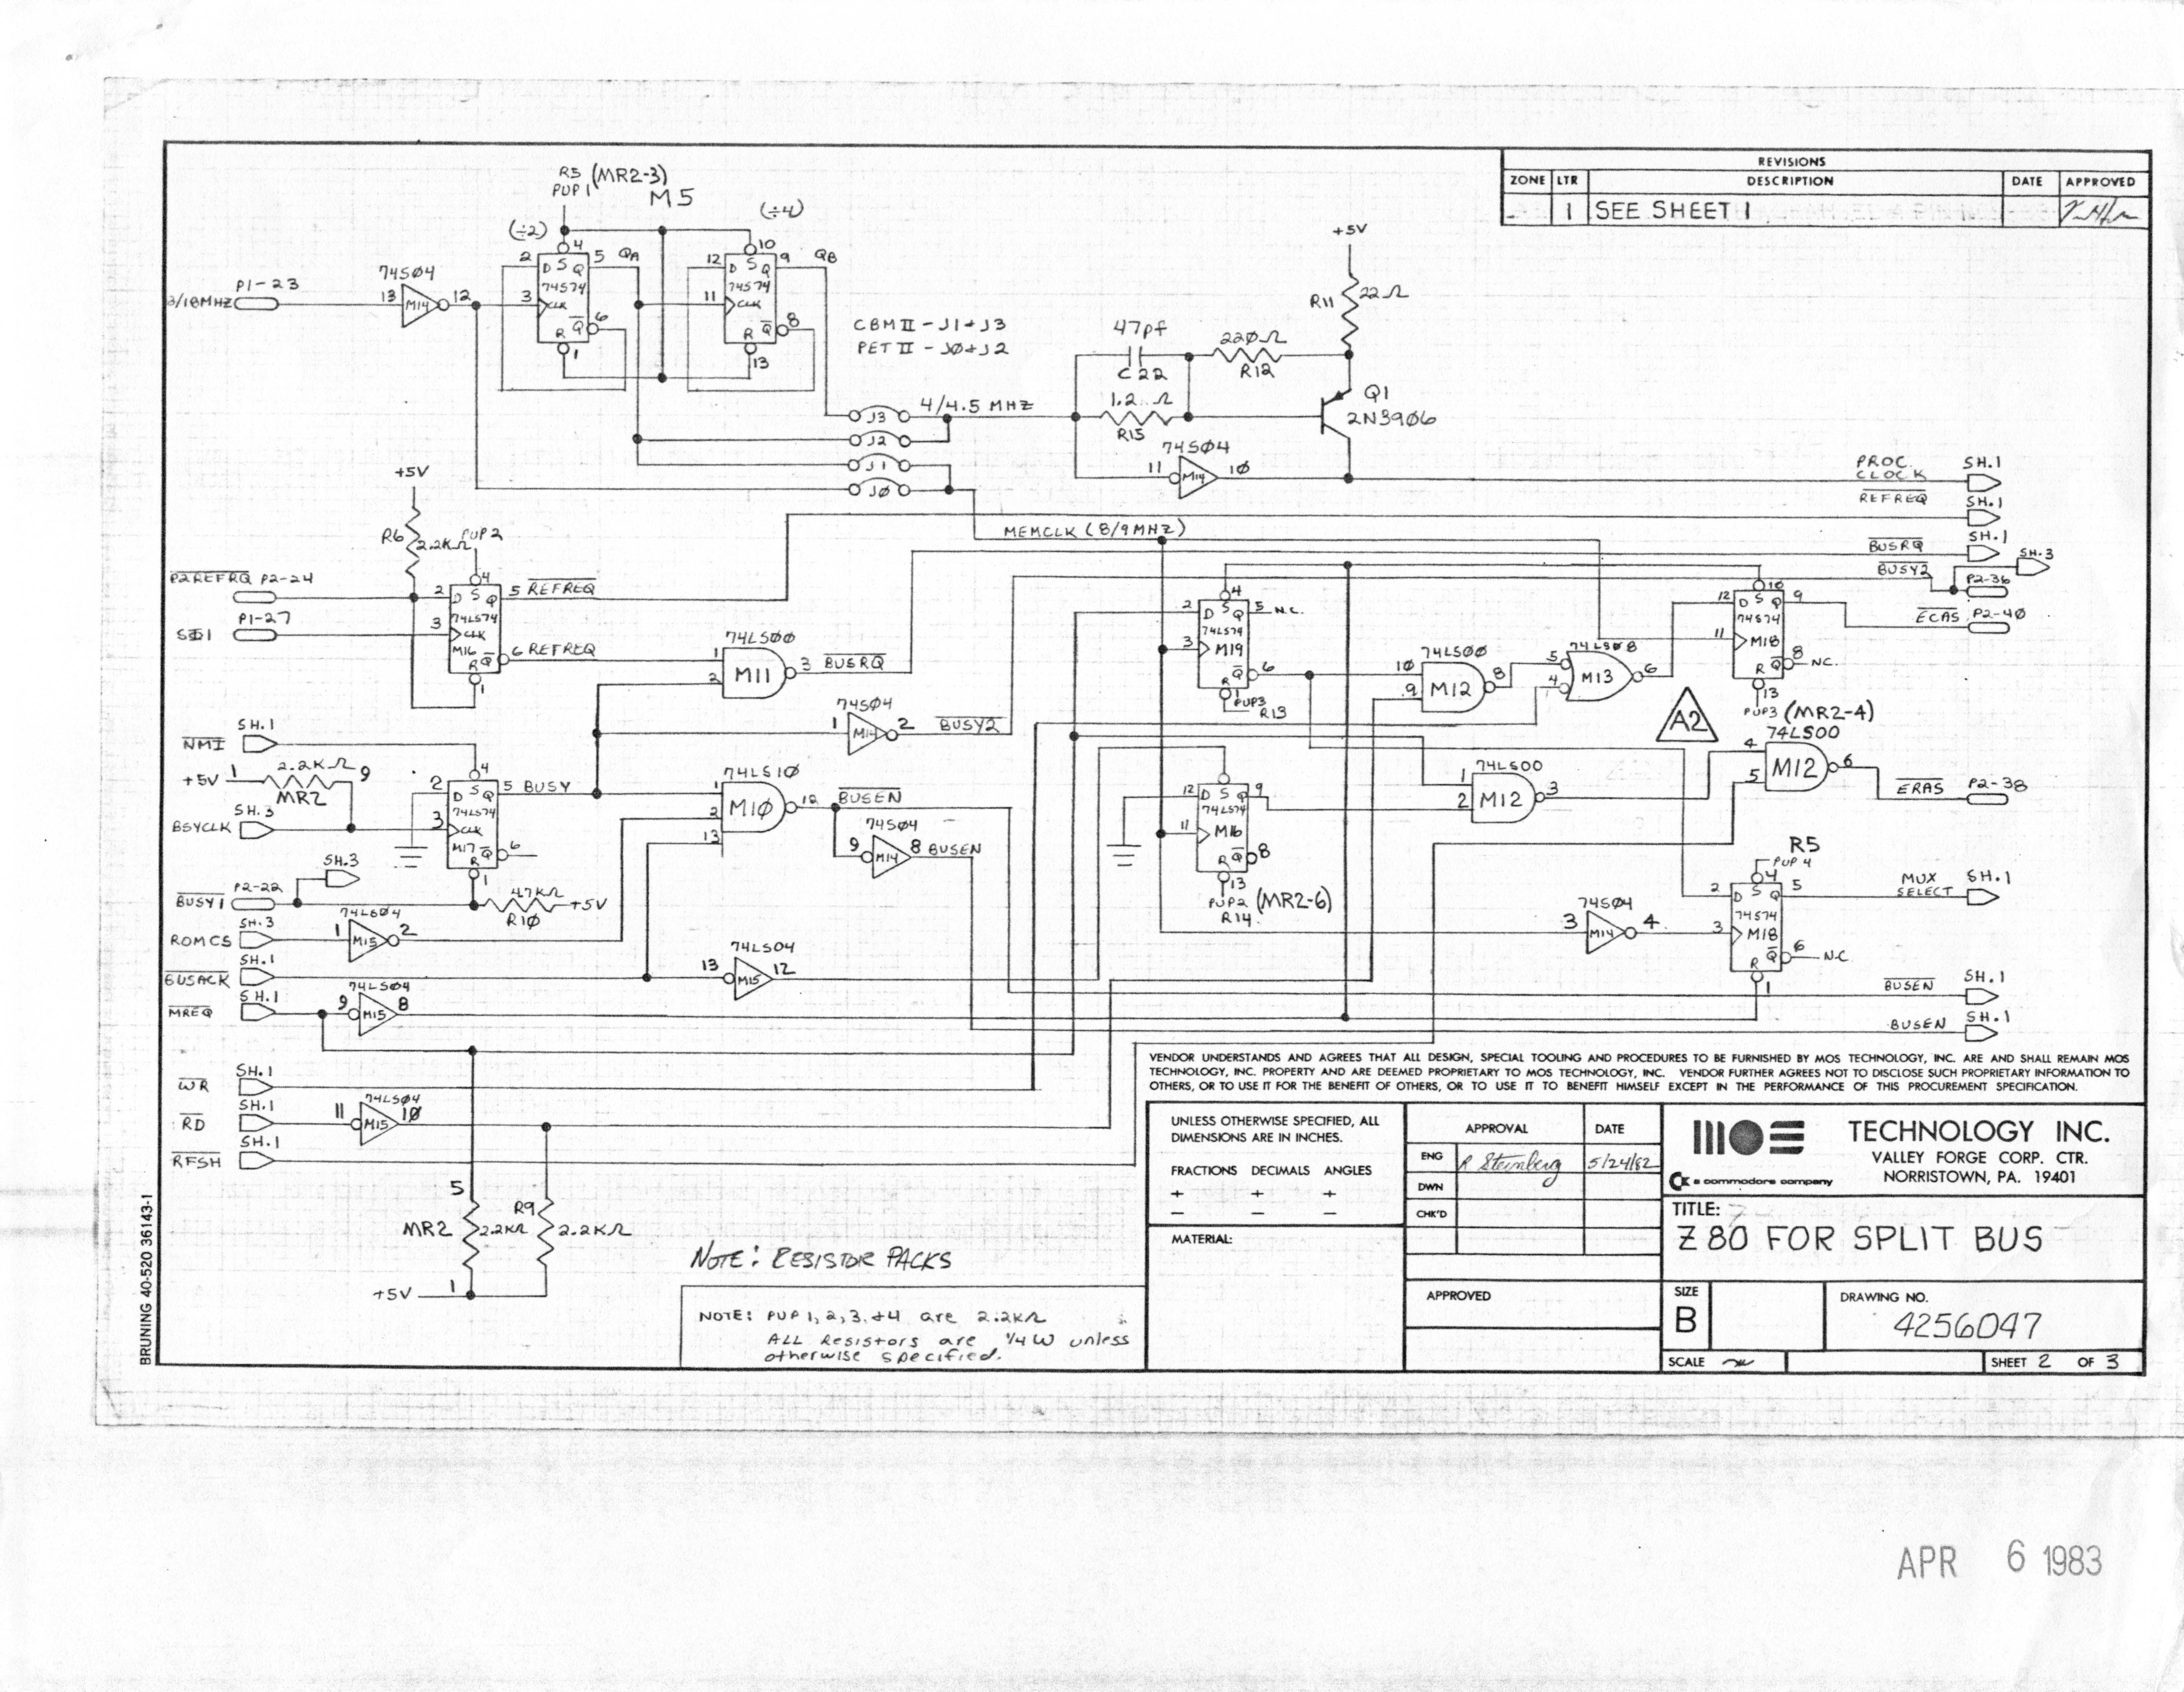 Pub Cbm Schematics Index Circuit Diagram Of A Cpu Co Processor Board For B Series Machines Reverse Engineered By Ruud Baltissen Http Ruudc64org 8256043 01of14 Leftgif Ii Lp Schematic P1